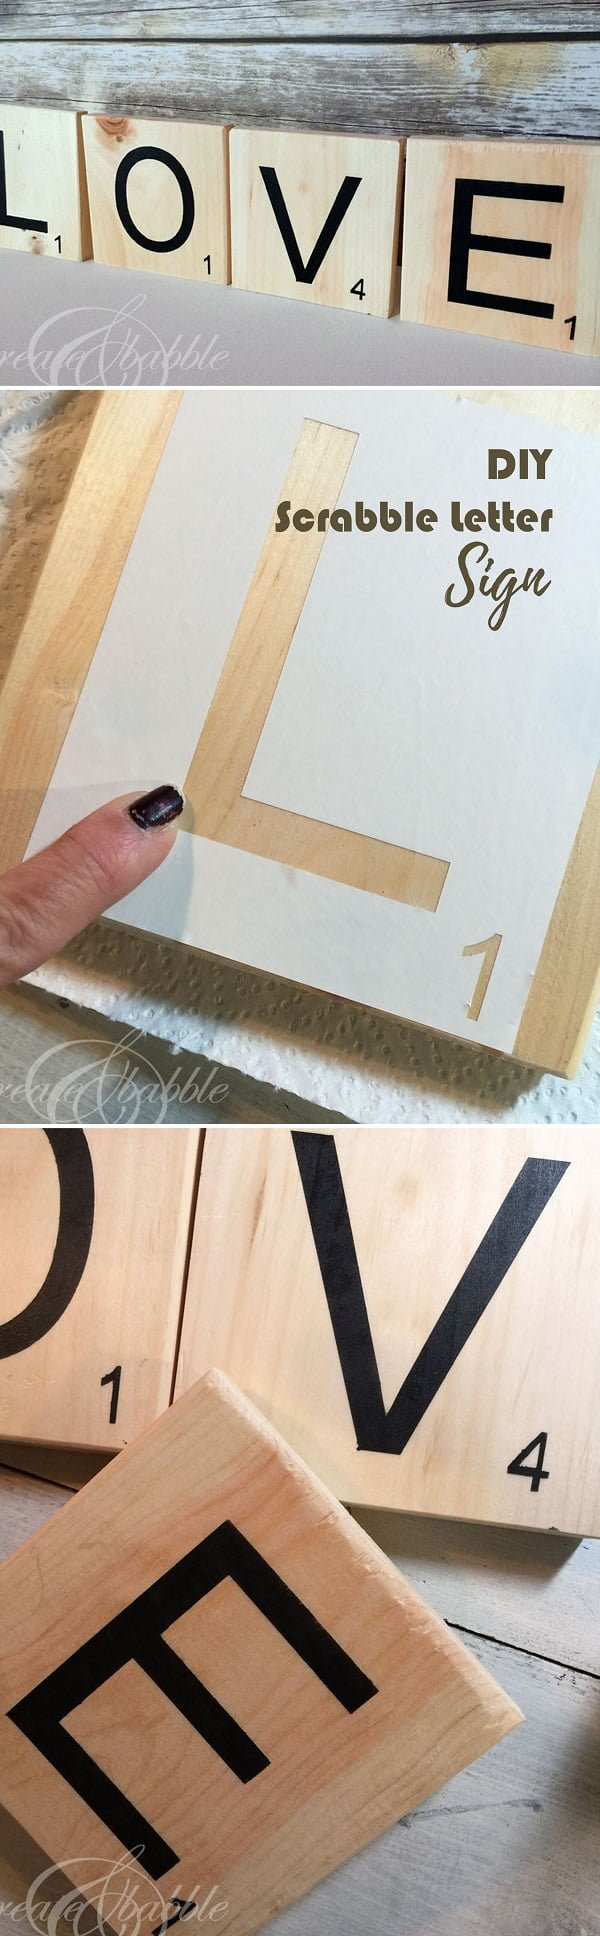 Check out this easy idea on how to make #DIY scrabble letter sign for #homedecor on a #budget #crafts #project